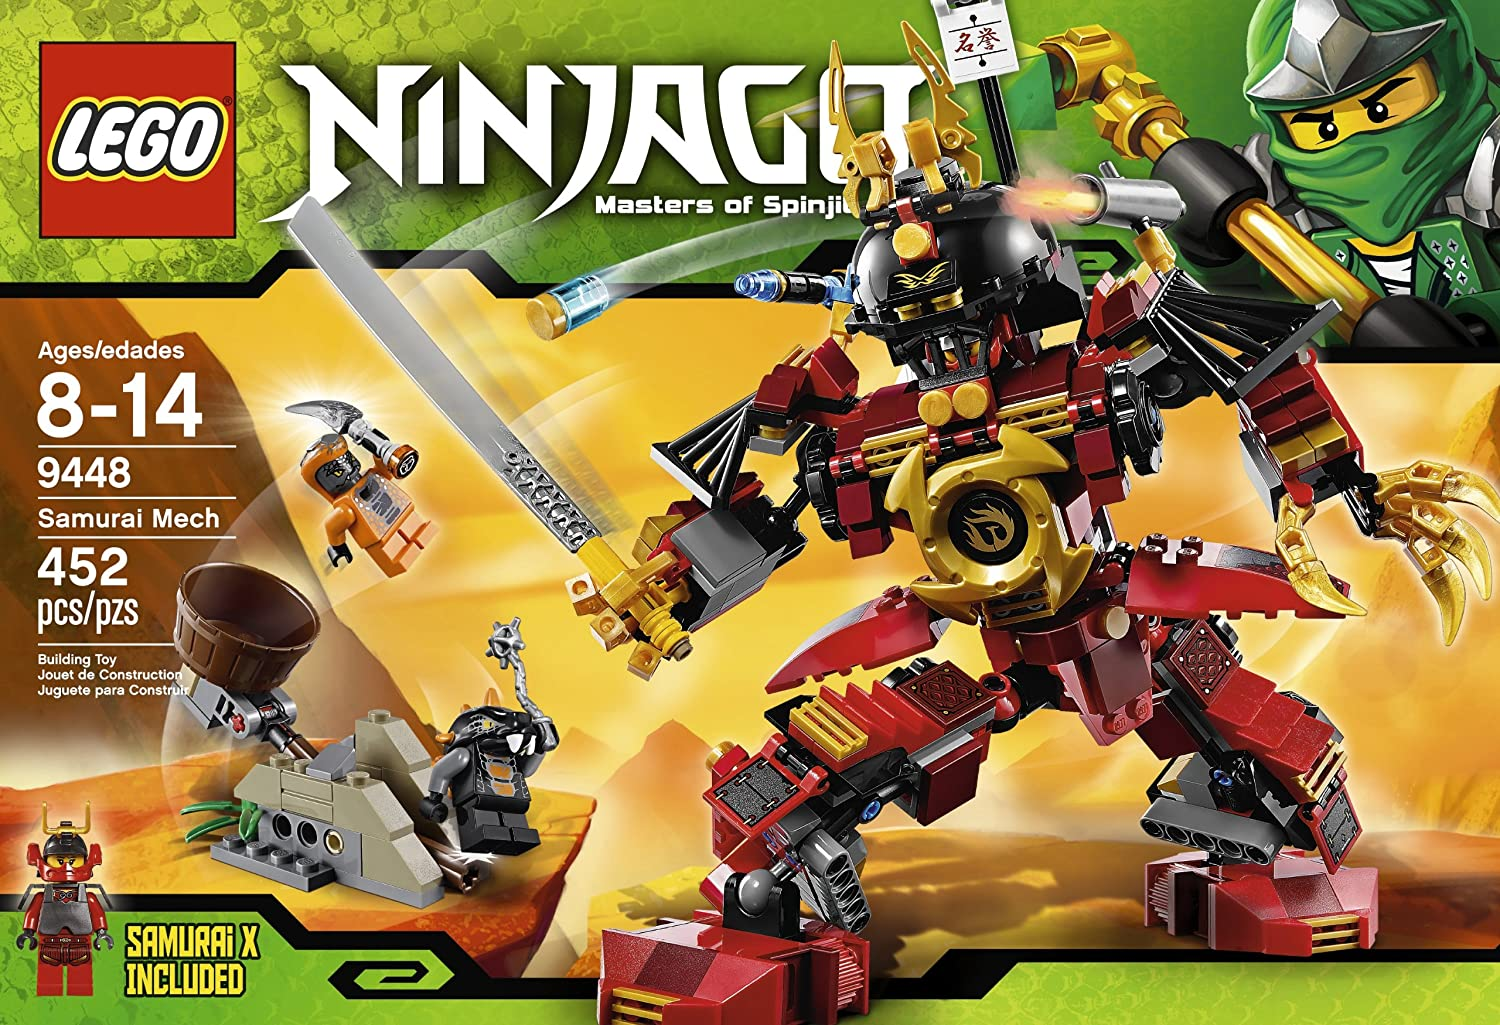 The primary locale in The LEGO Ninjago Movie, which opens September 22, Ninjago City is an Eastern-inspired cyberpunk city, brimming with action and loaded with hidden details. Ninjago City.